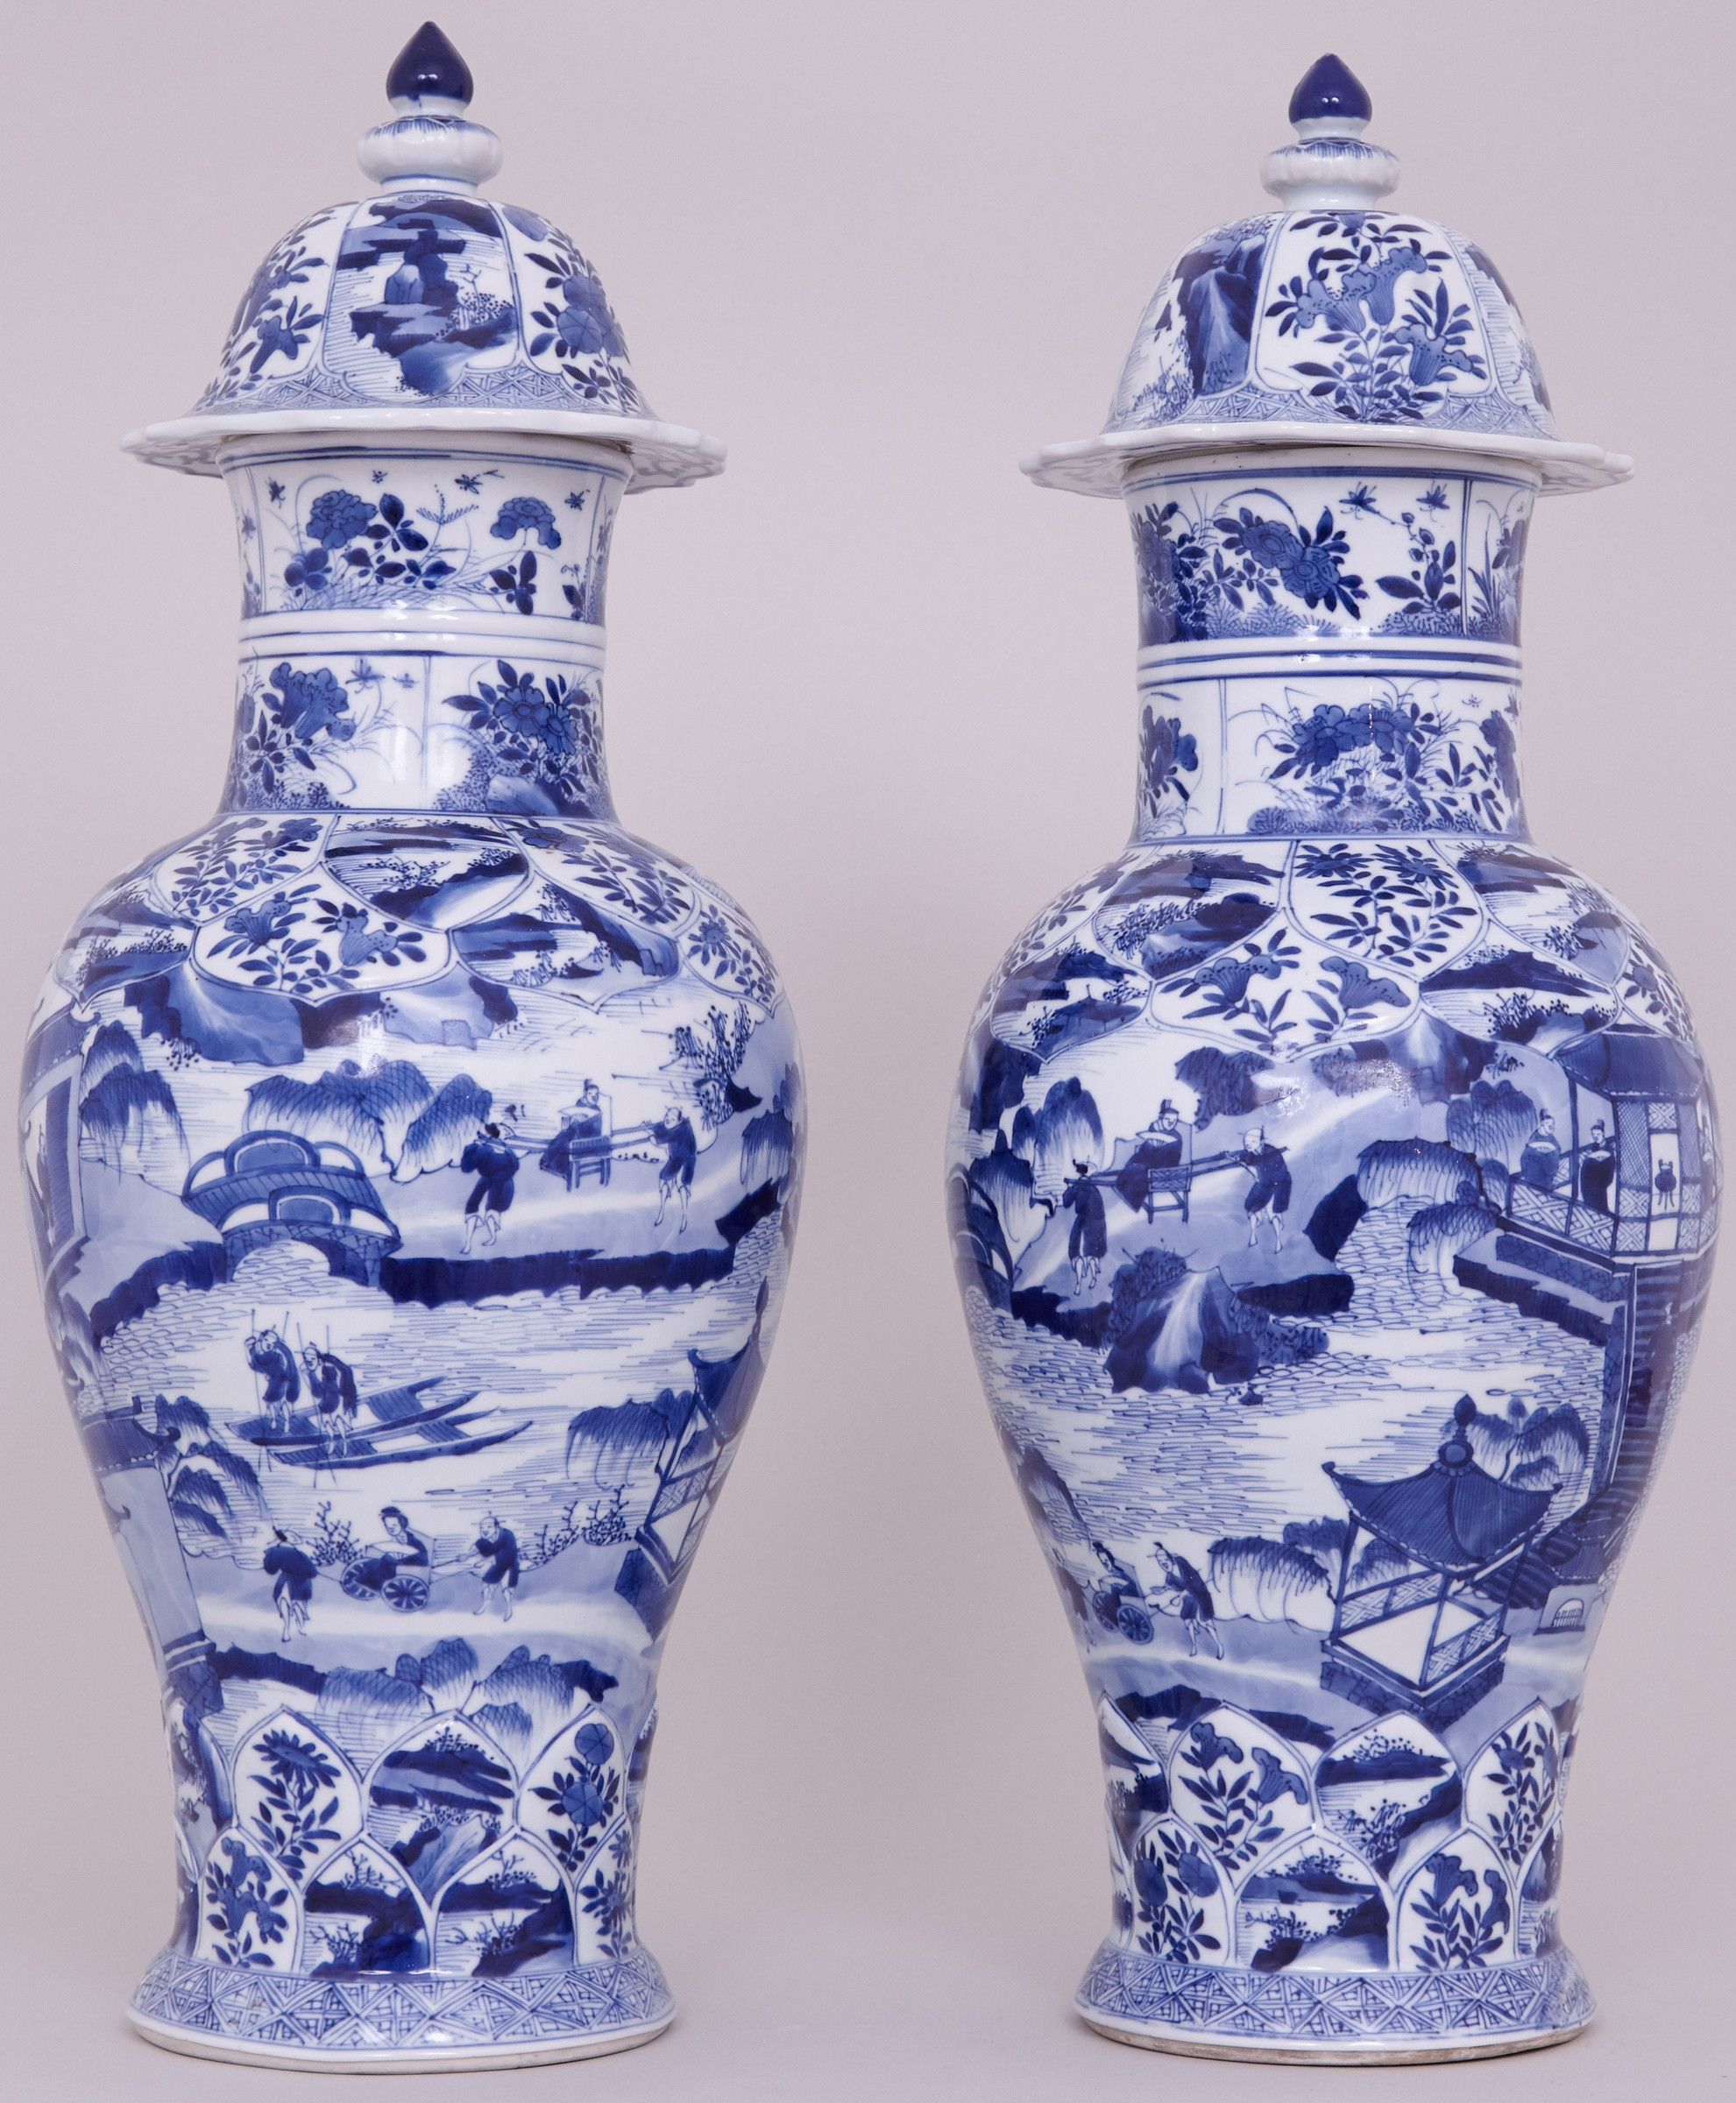 chinese blue white vase of a pair of highly unusual tall and fine chinese blue and white vases pertaining to a pair of highly unusual tall and fine chinese blue and white vases and covers